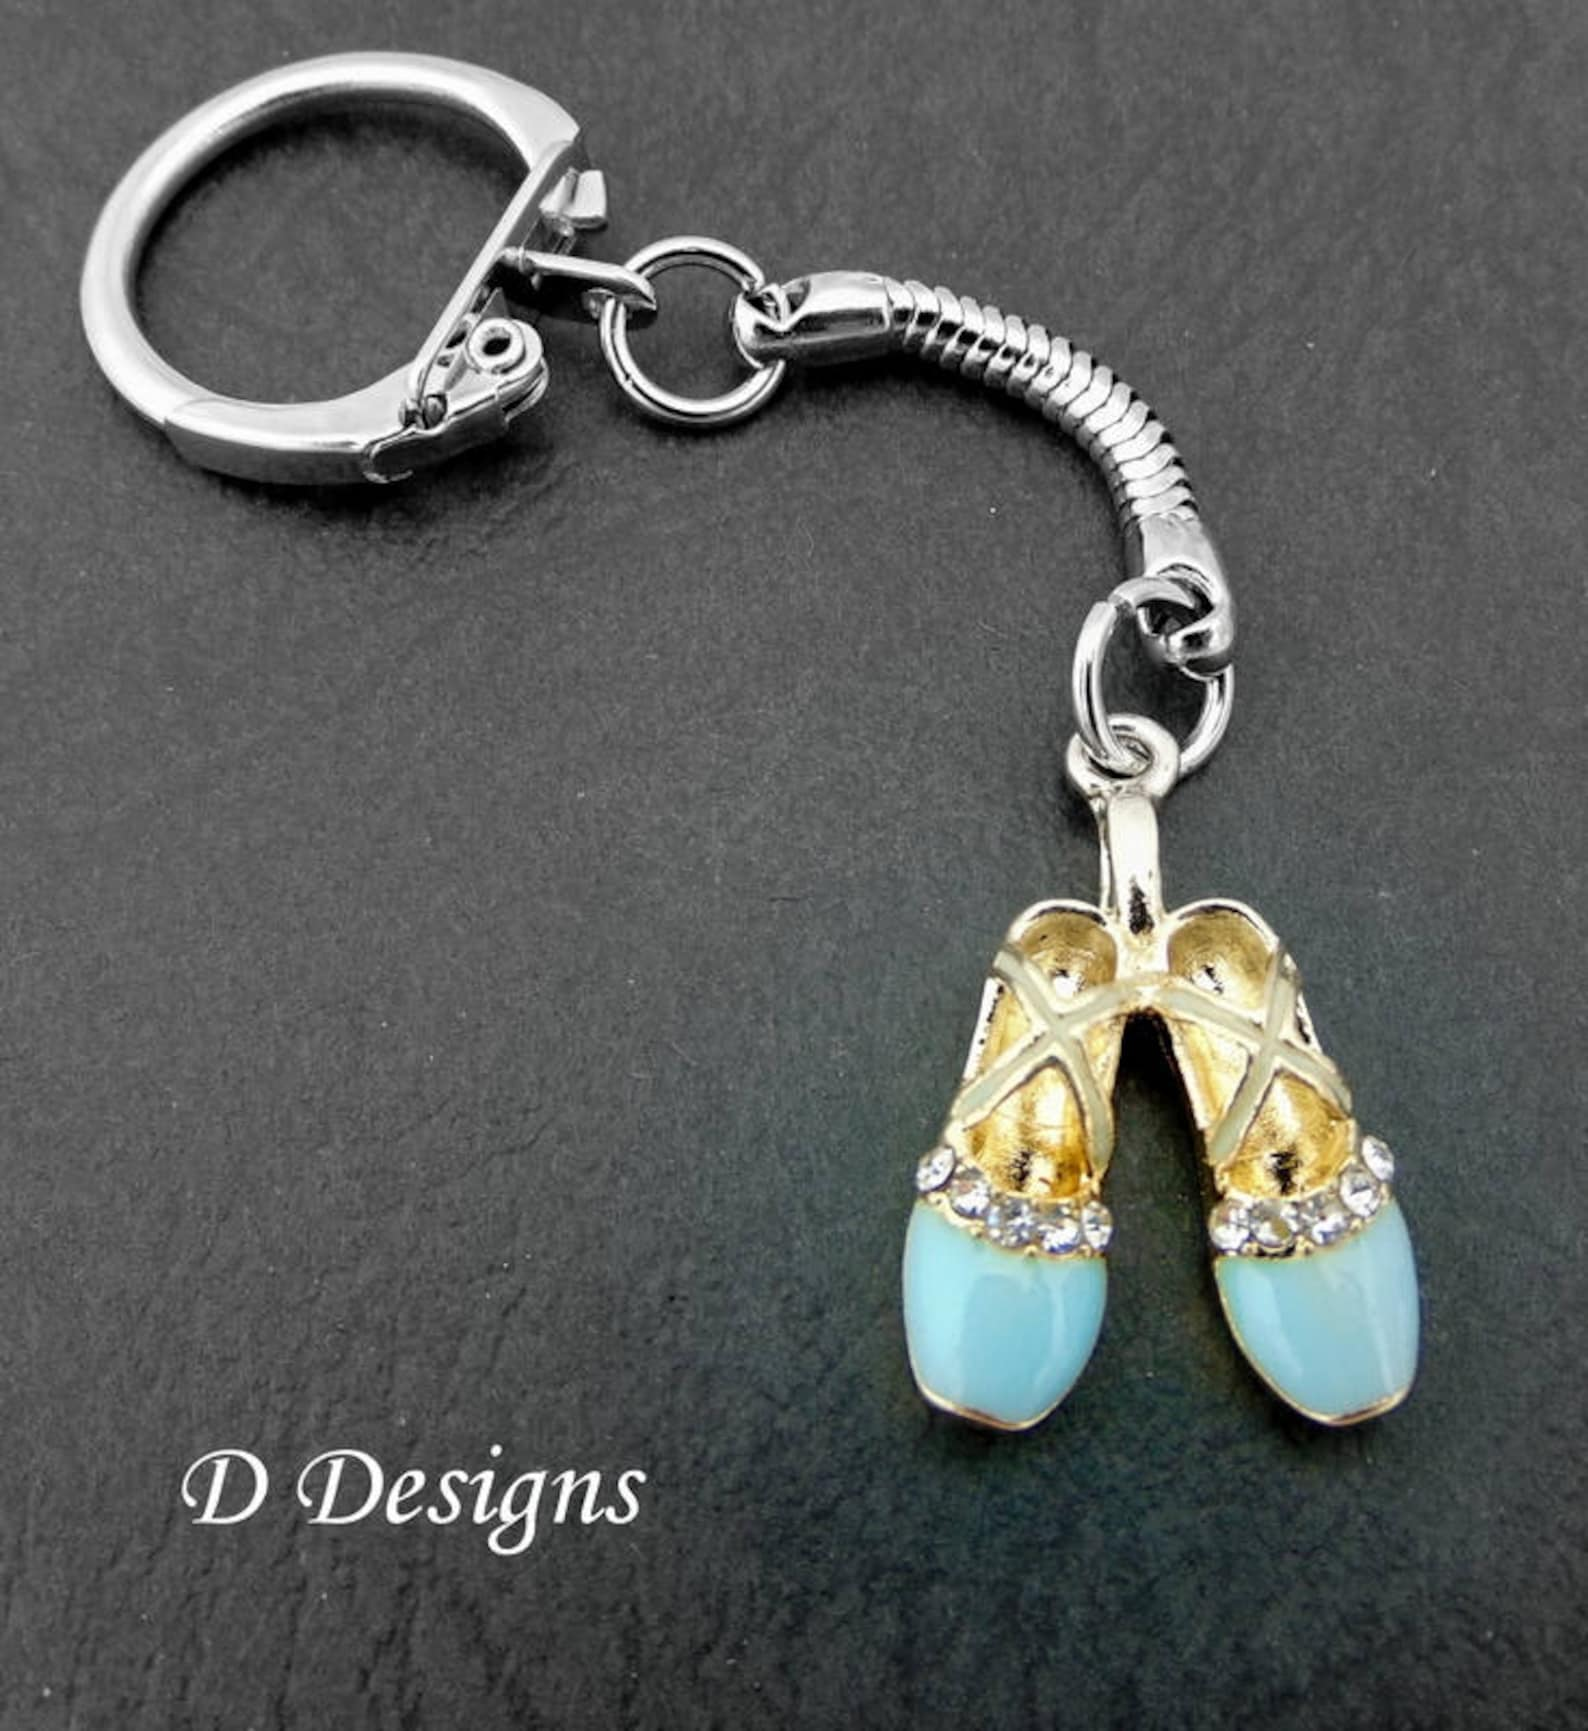 ballet shoes keyring, ballet shoes keychain, dancer key chain, dancer keychain, personalised ballet key chain, ballet gifts